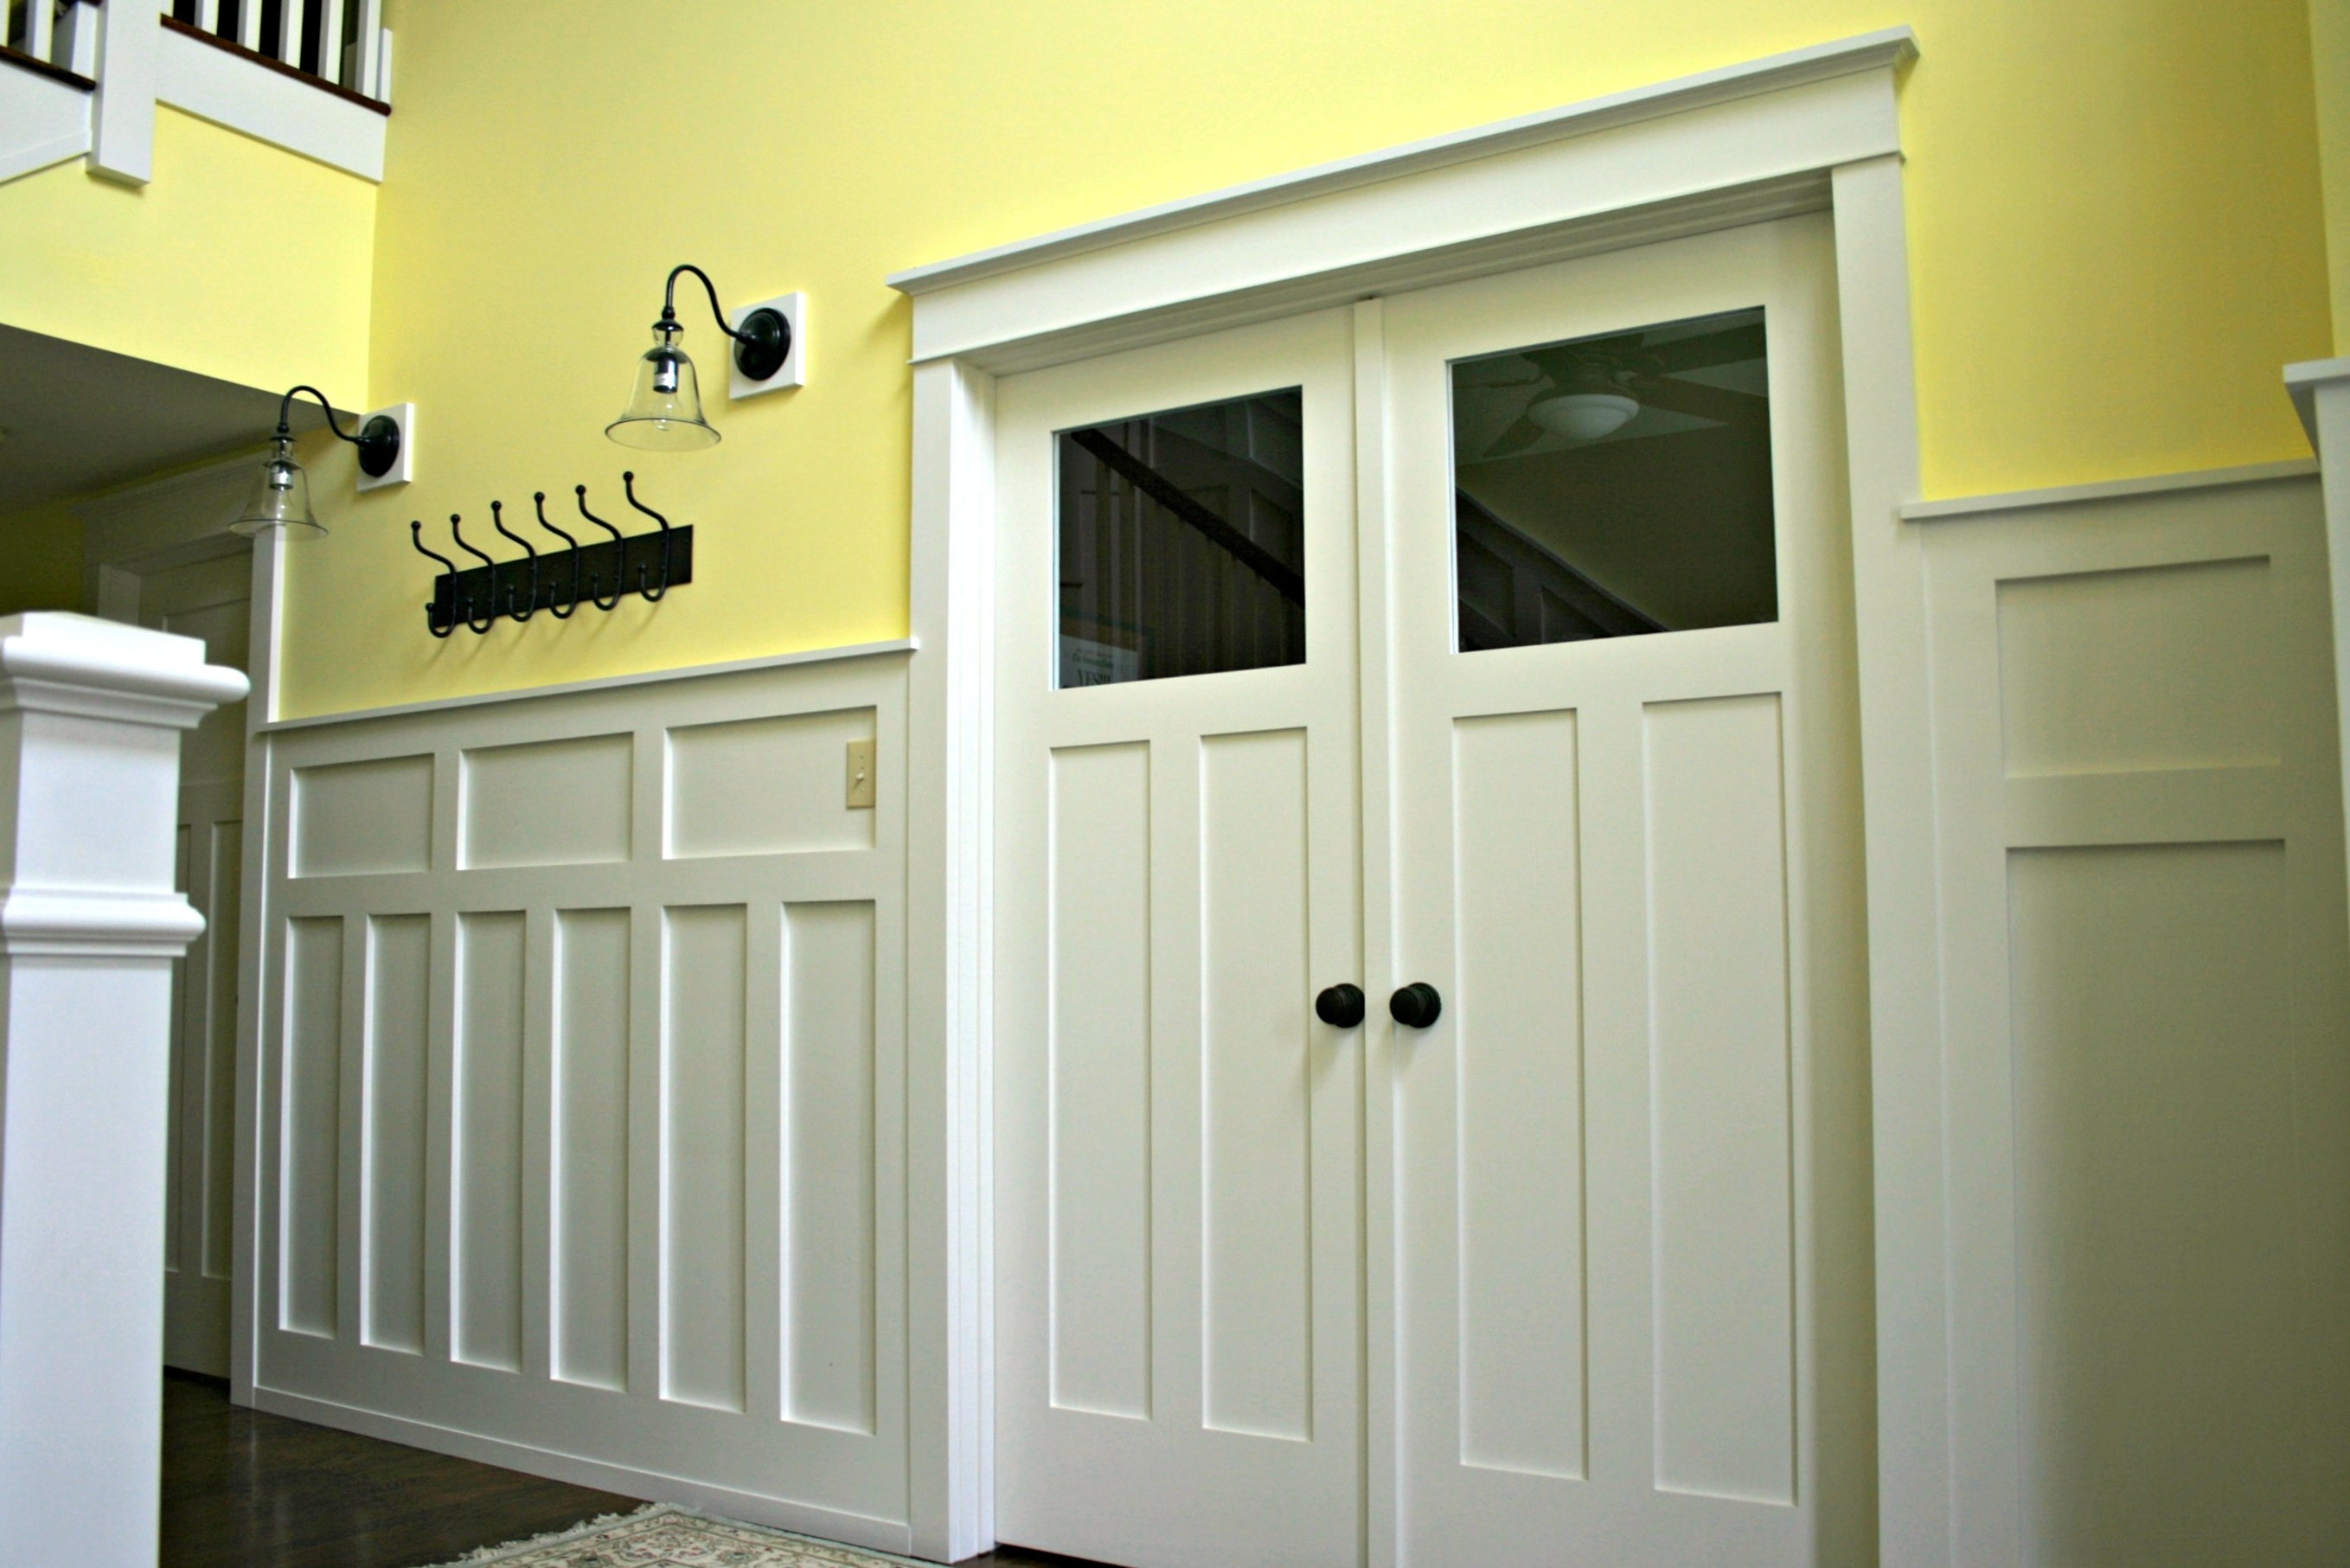 Door casing and window trim installation by deacon home enhancement - Basement Wainscoting Quotes